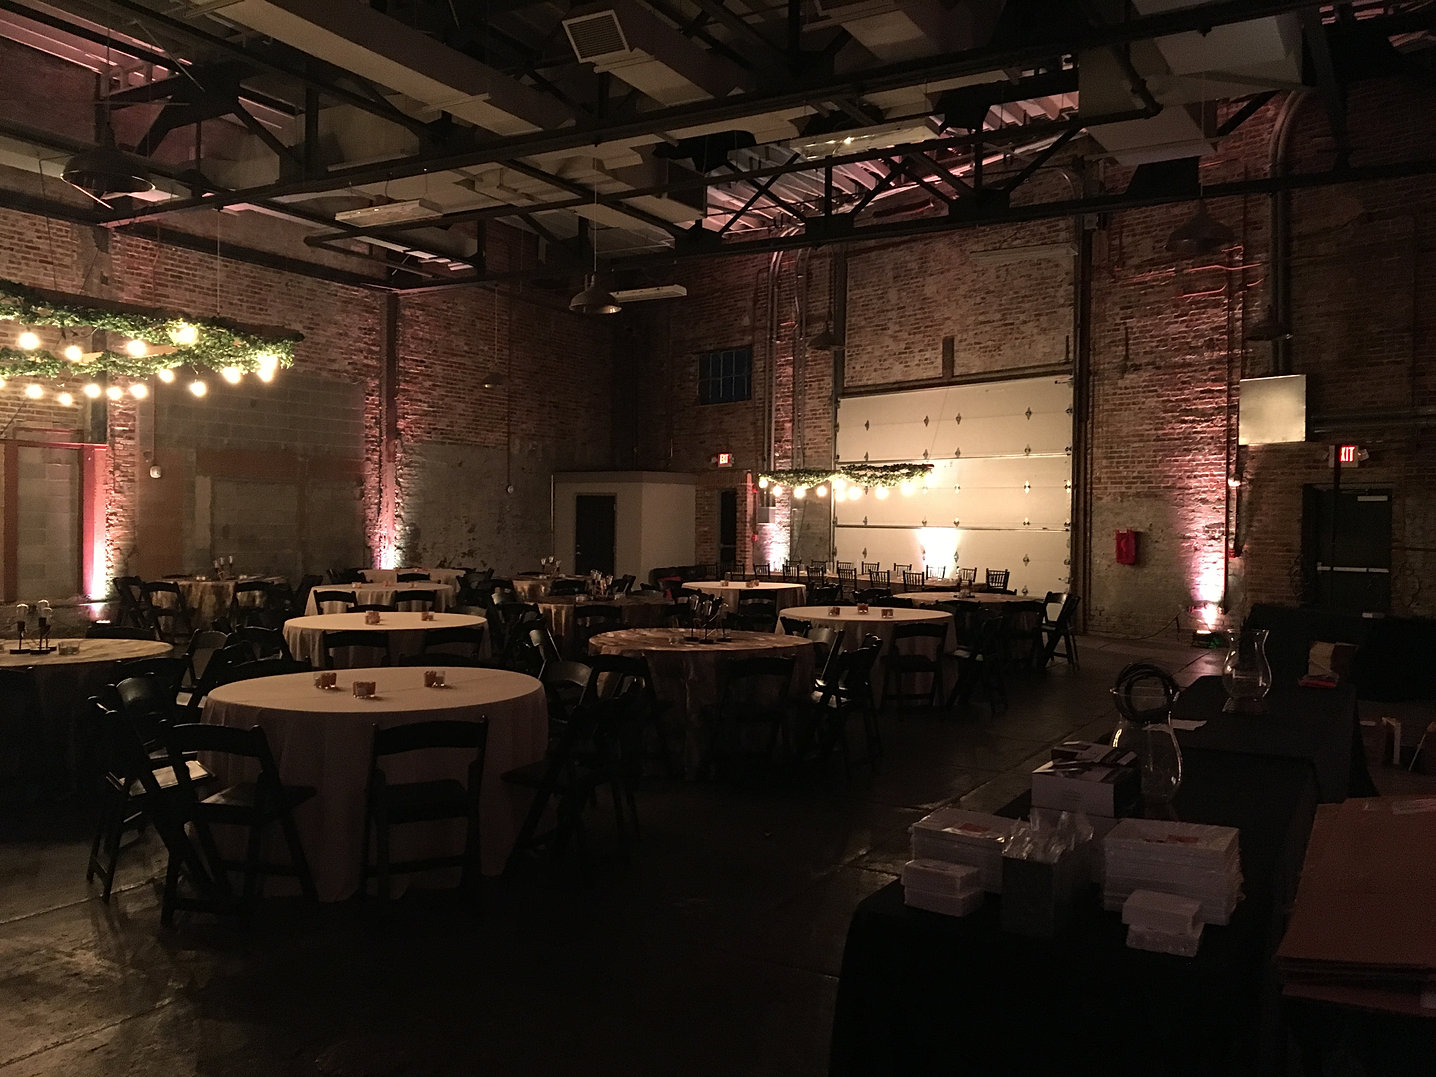 The Brick Room Event Center